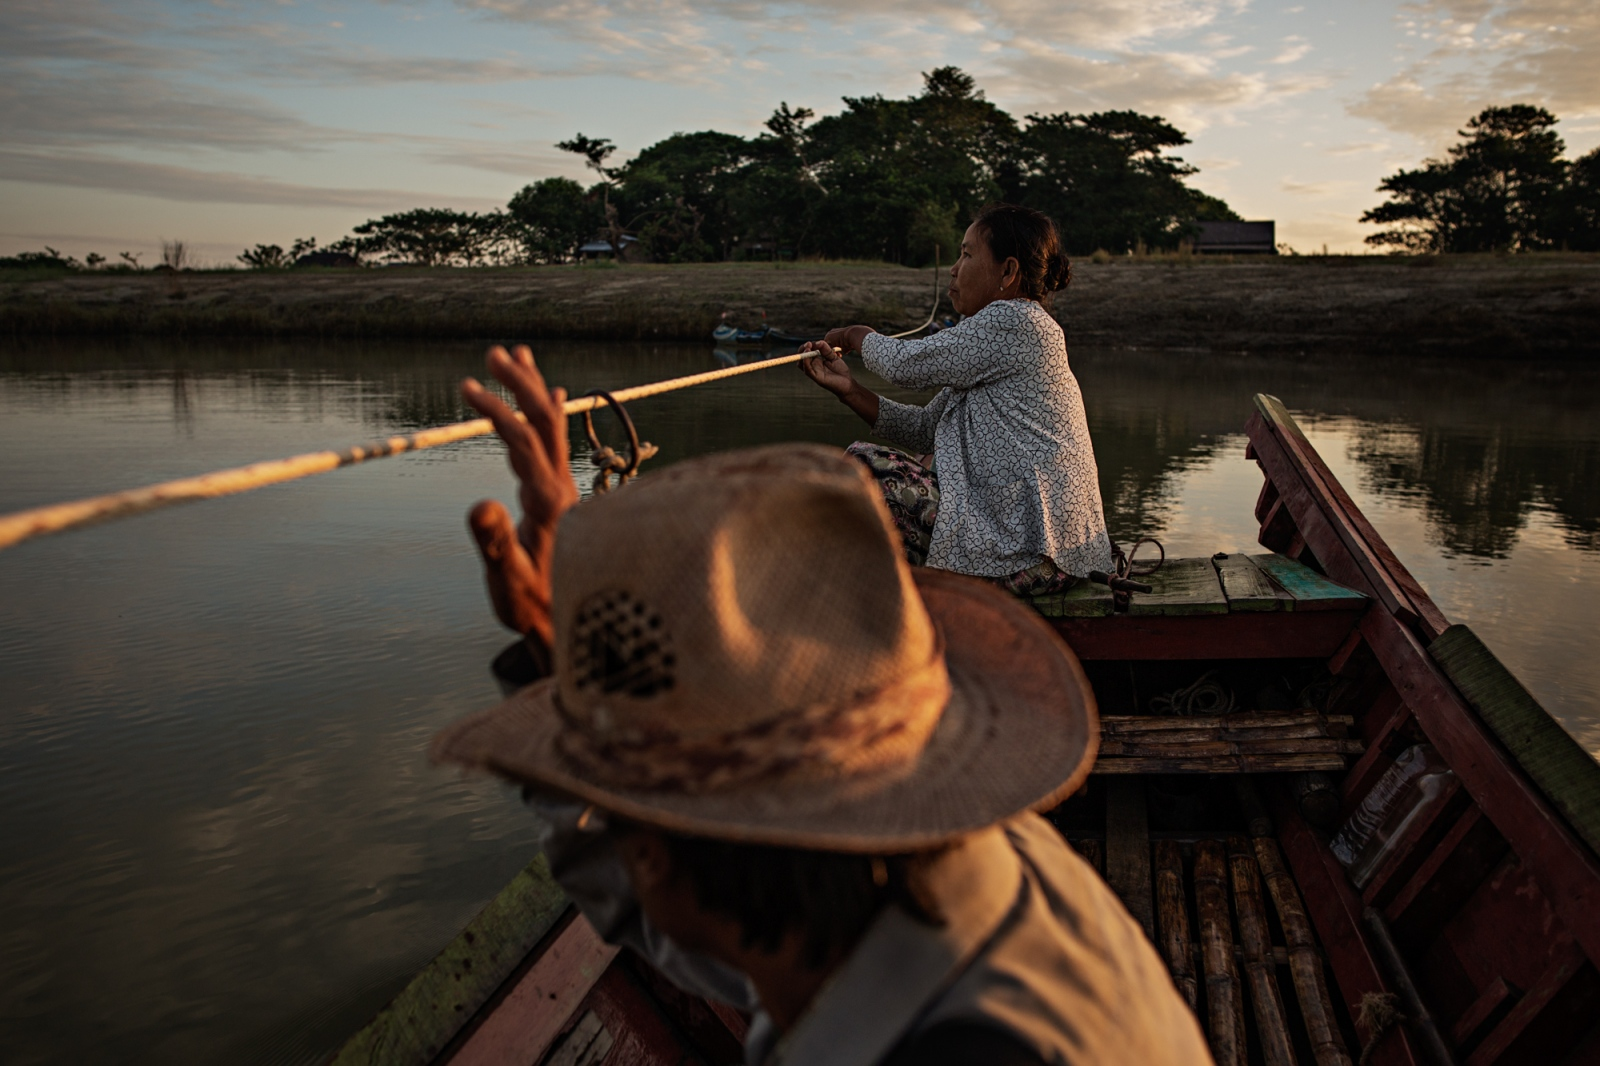 A man rides a boat across the river in Hinthada, powered by the woman pulling on the rope.